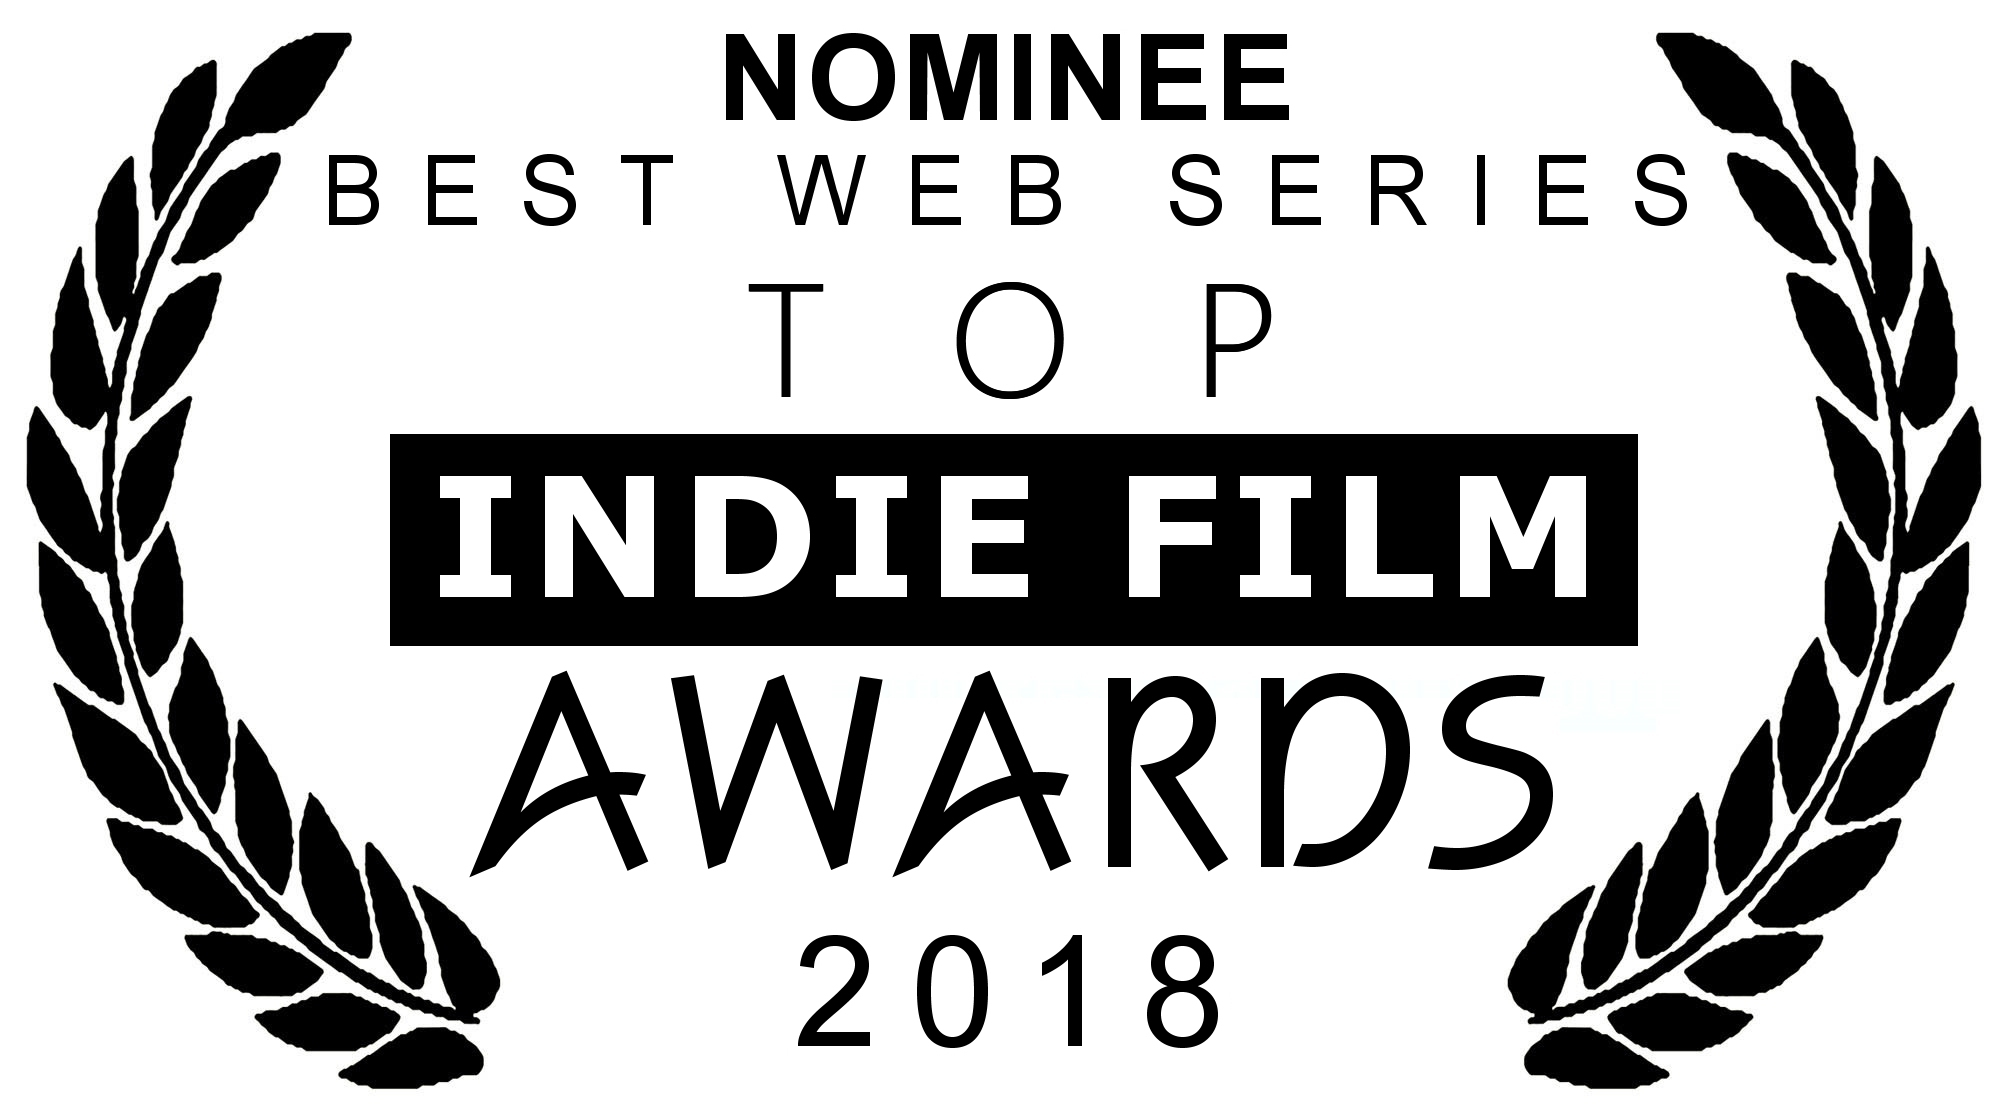 tifa-2018-nominee-best-web-series.jpg